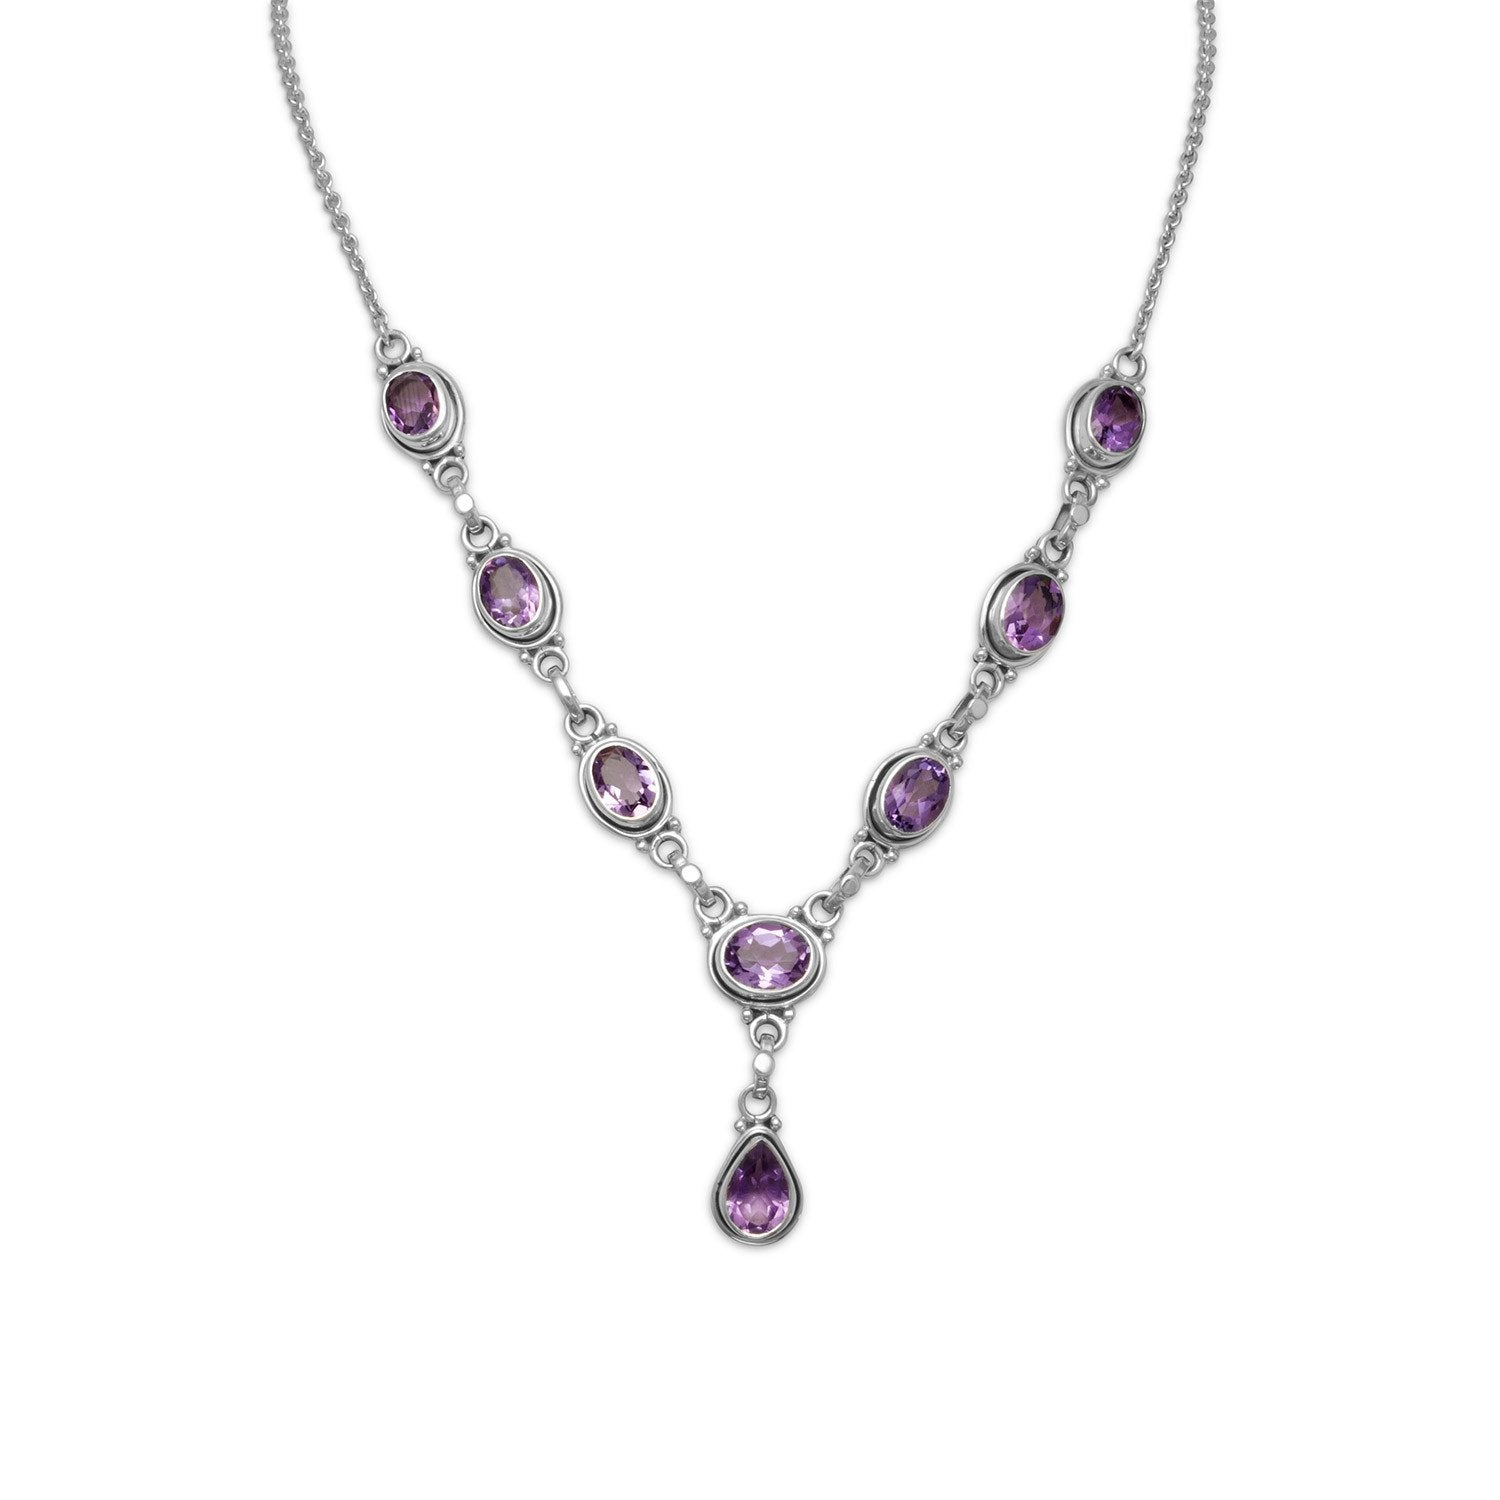 Extension Oval and Pear Shape Amethyst Necklace - the-southern-magnolia-too